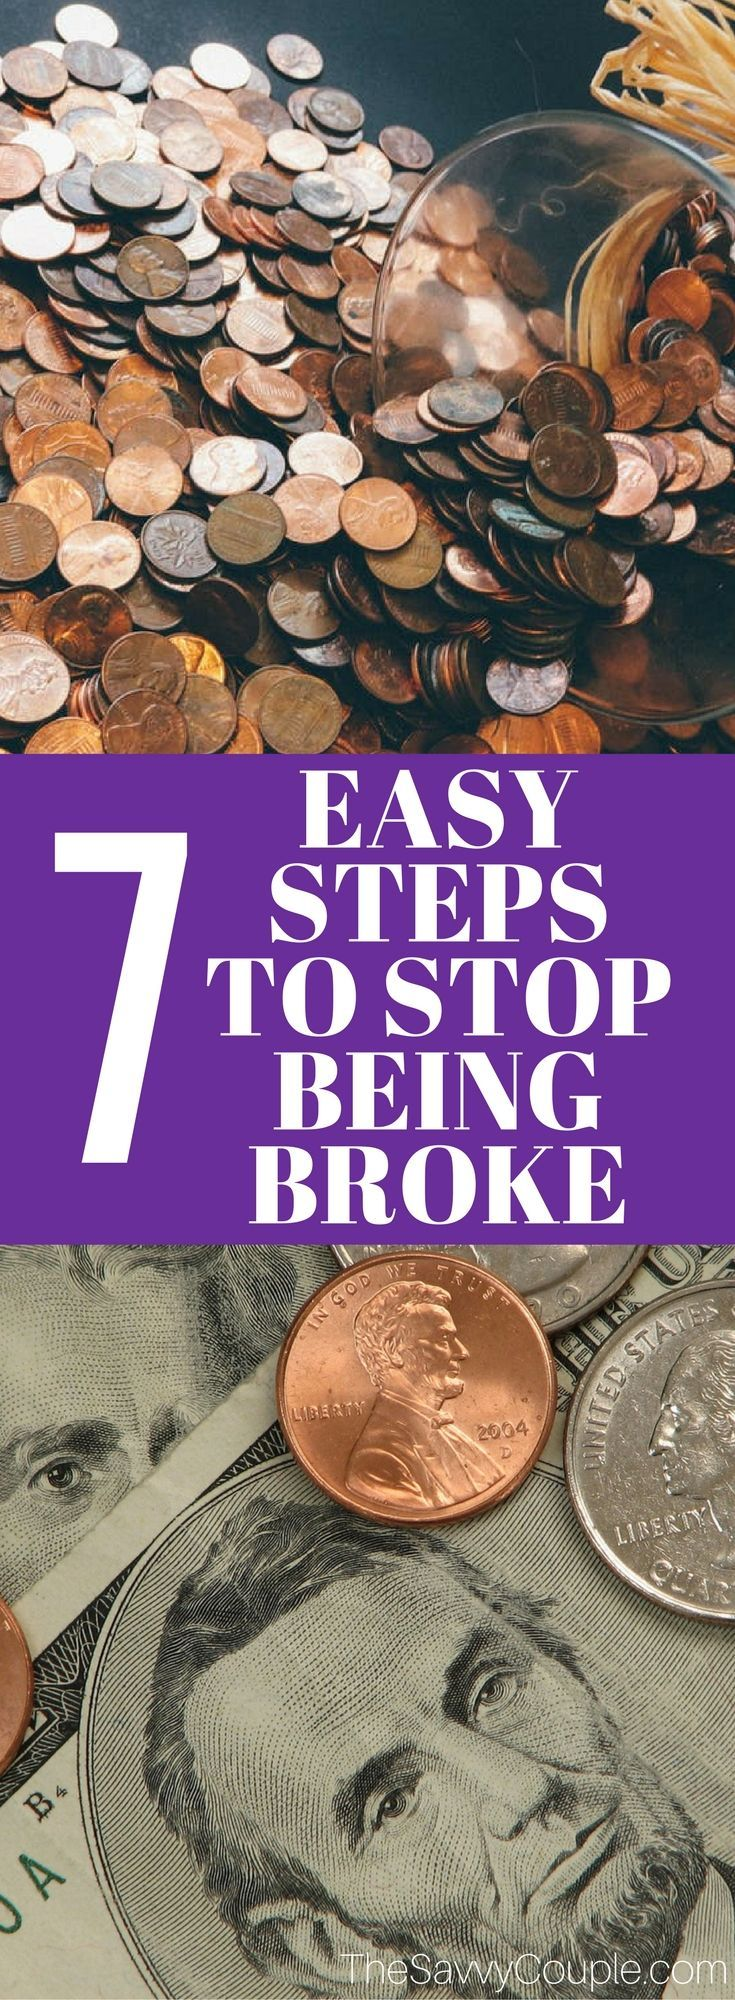 A budget, who needs one? Well if we are being honest we all do. In a world where money is the end all be all controlling your finances is #1. This incredible step by step guide will walk you through how to stop living paycheck to paycheck. #SaveMoney #SideHustle #ExtraIncome #FinancialFreedom #DebtFree